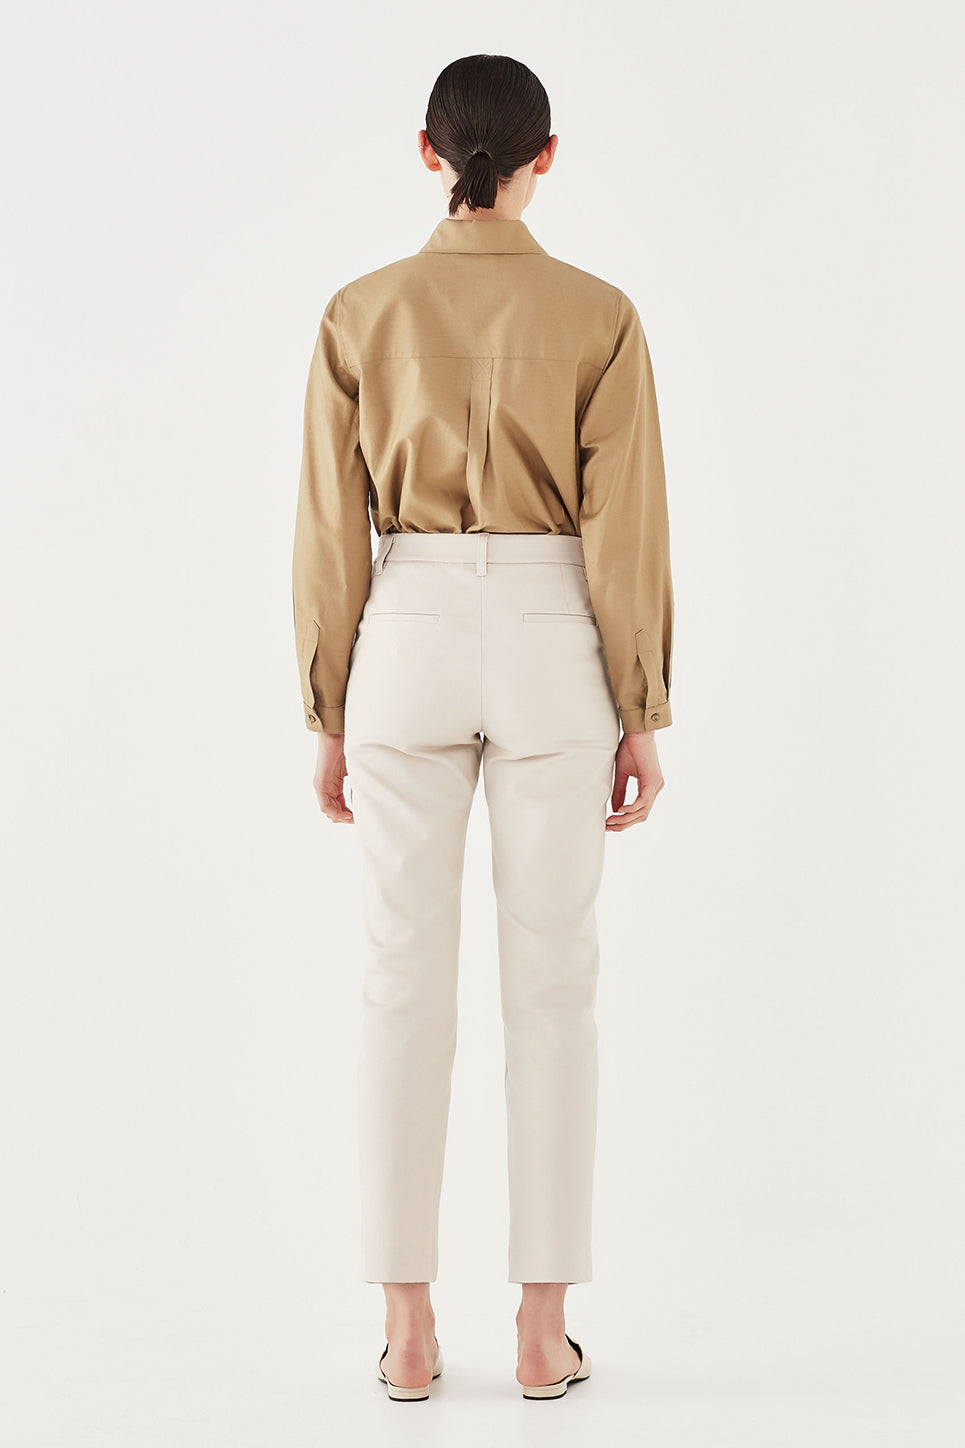 The Marlon Trouser in Bone